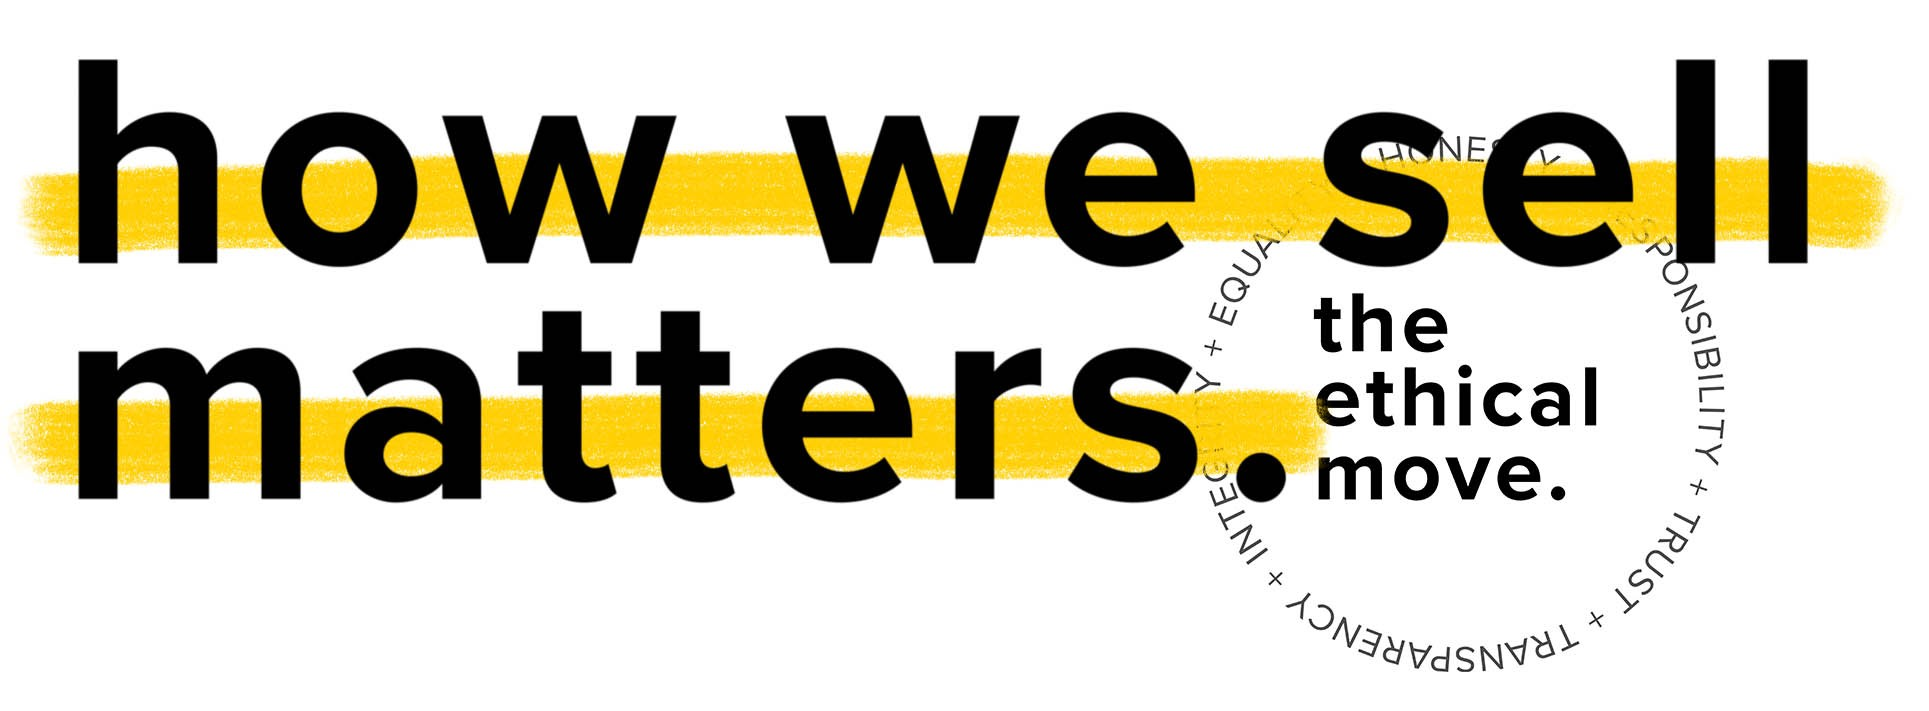 """Graphic with the words """"how we sell matters."""" underlined with yellow marker and the ethical move logo"""